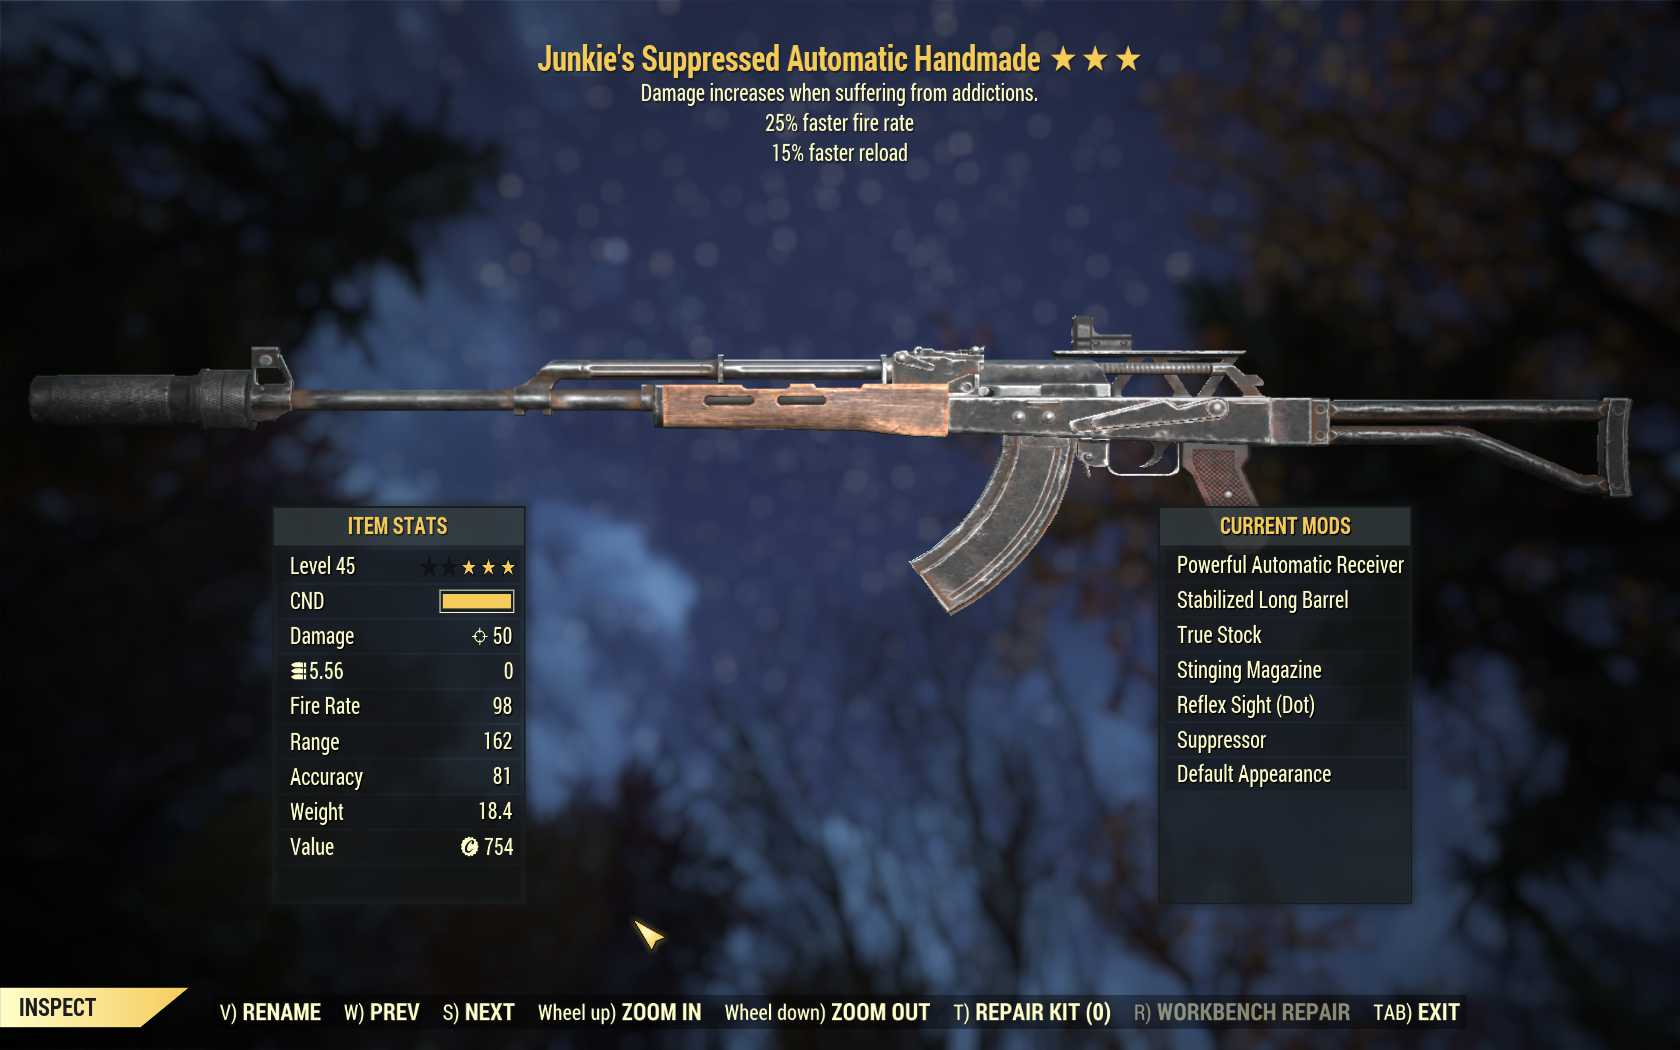 Junkie's Handmade (25% faster fire rate, 15% faster reload)